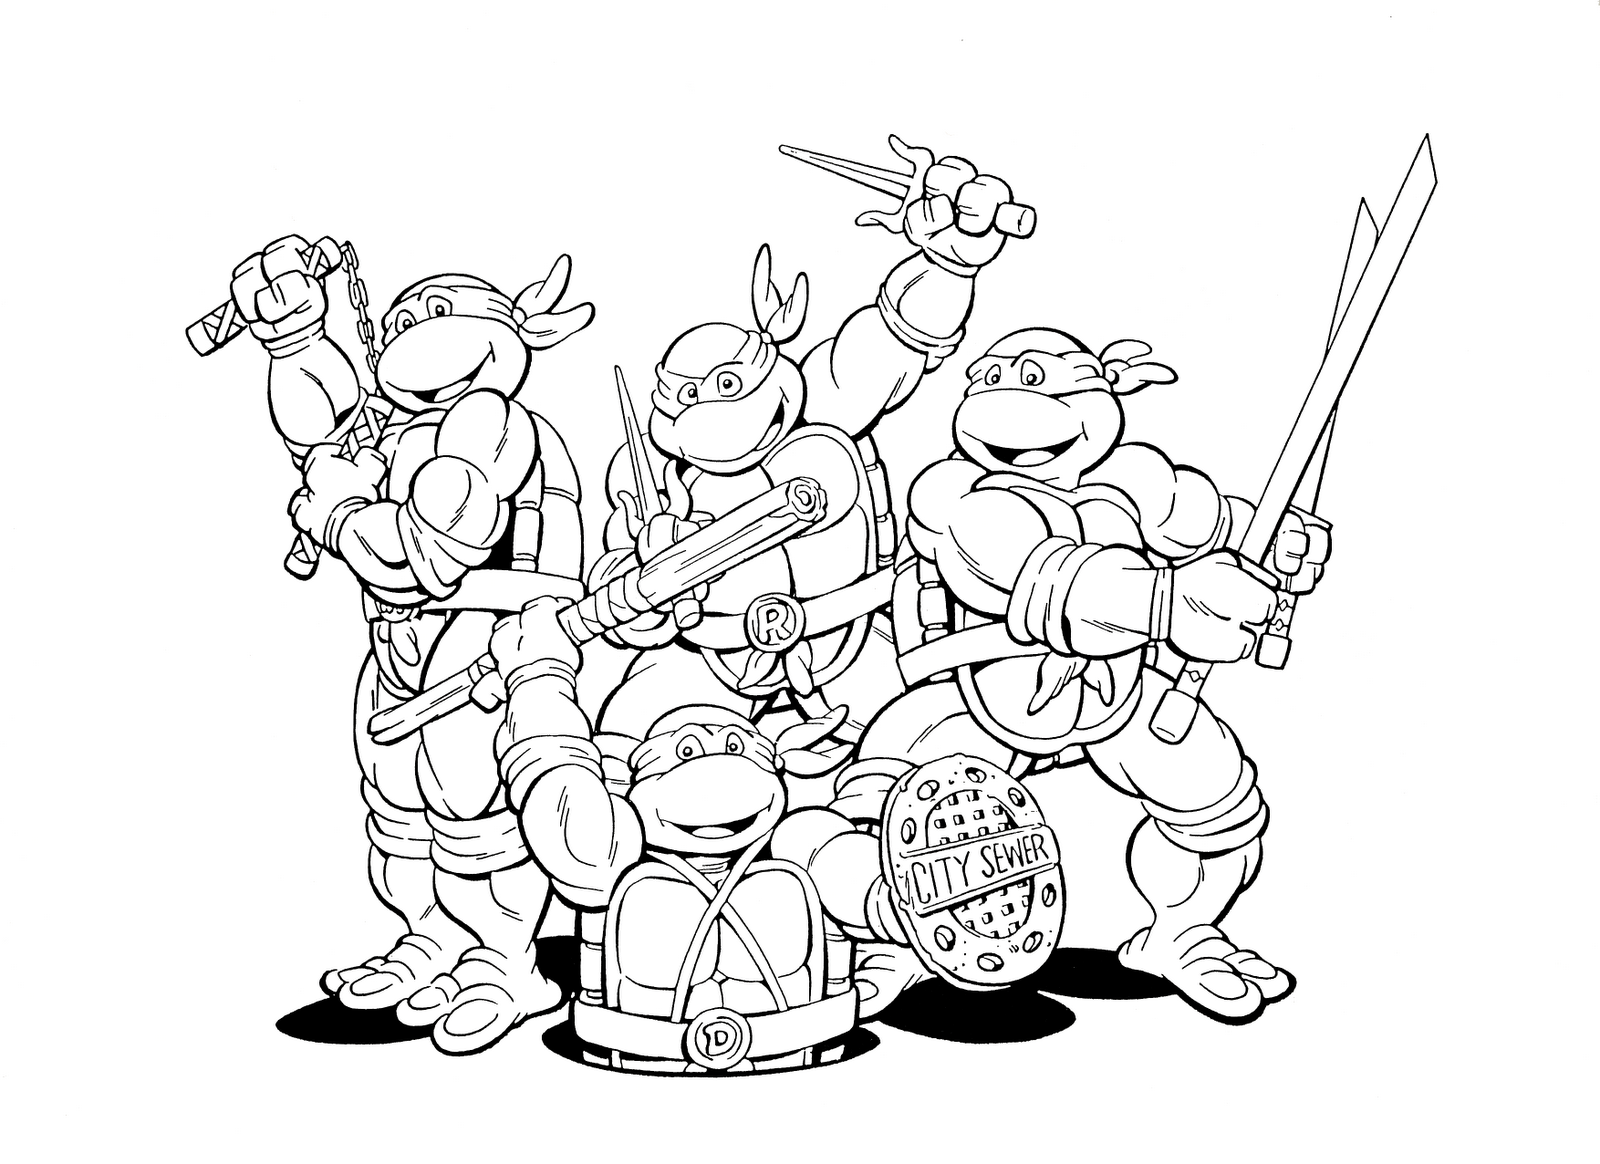 Teenage Mutant Ninja Turtles TMNT Coloring Pages free Printable ...